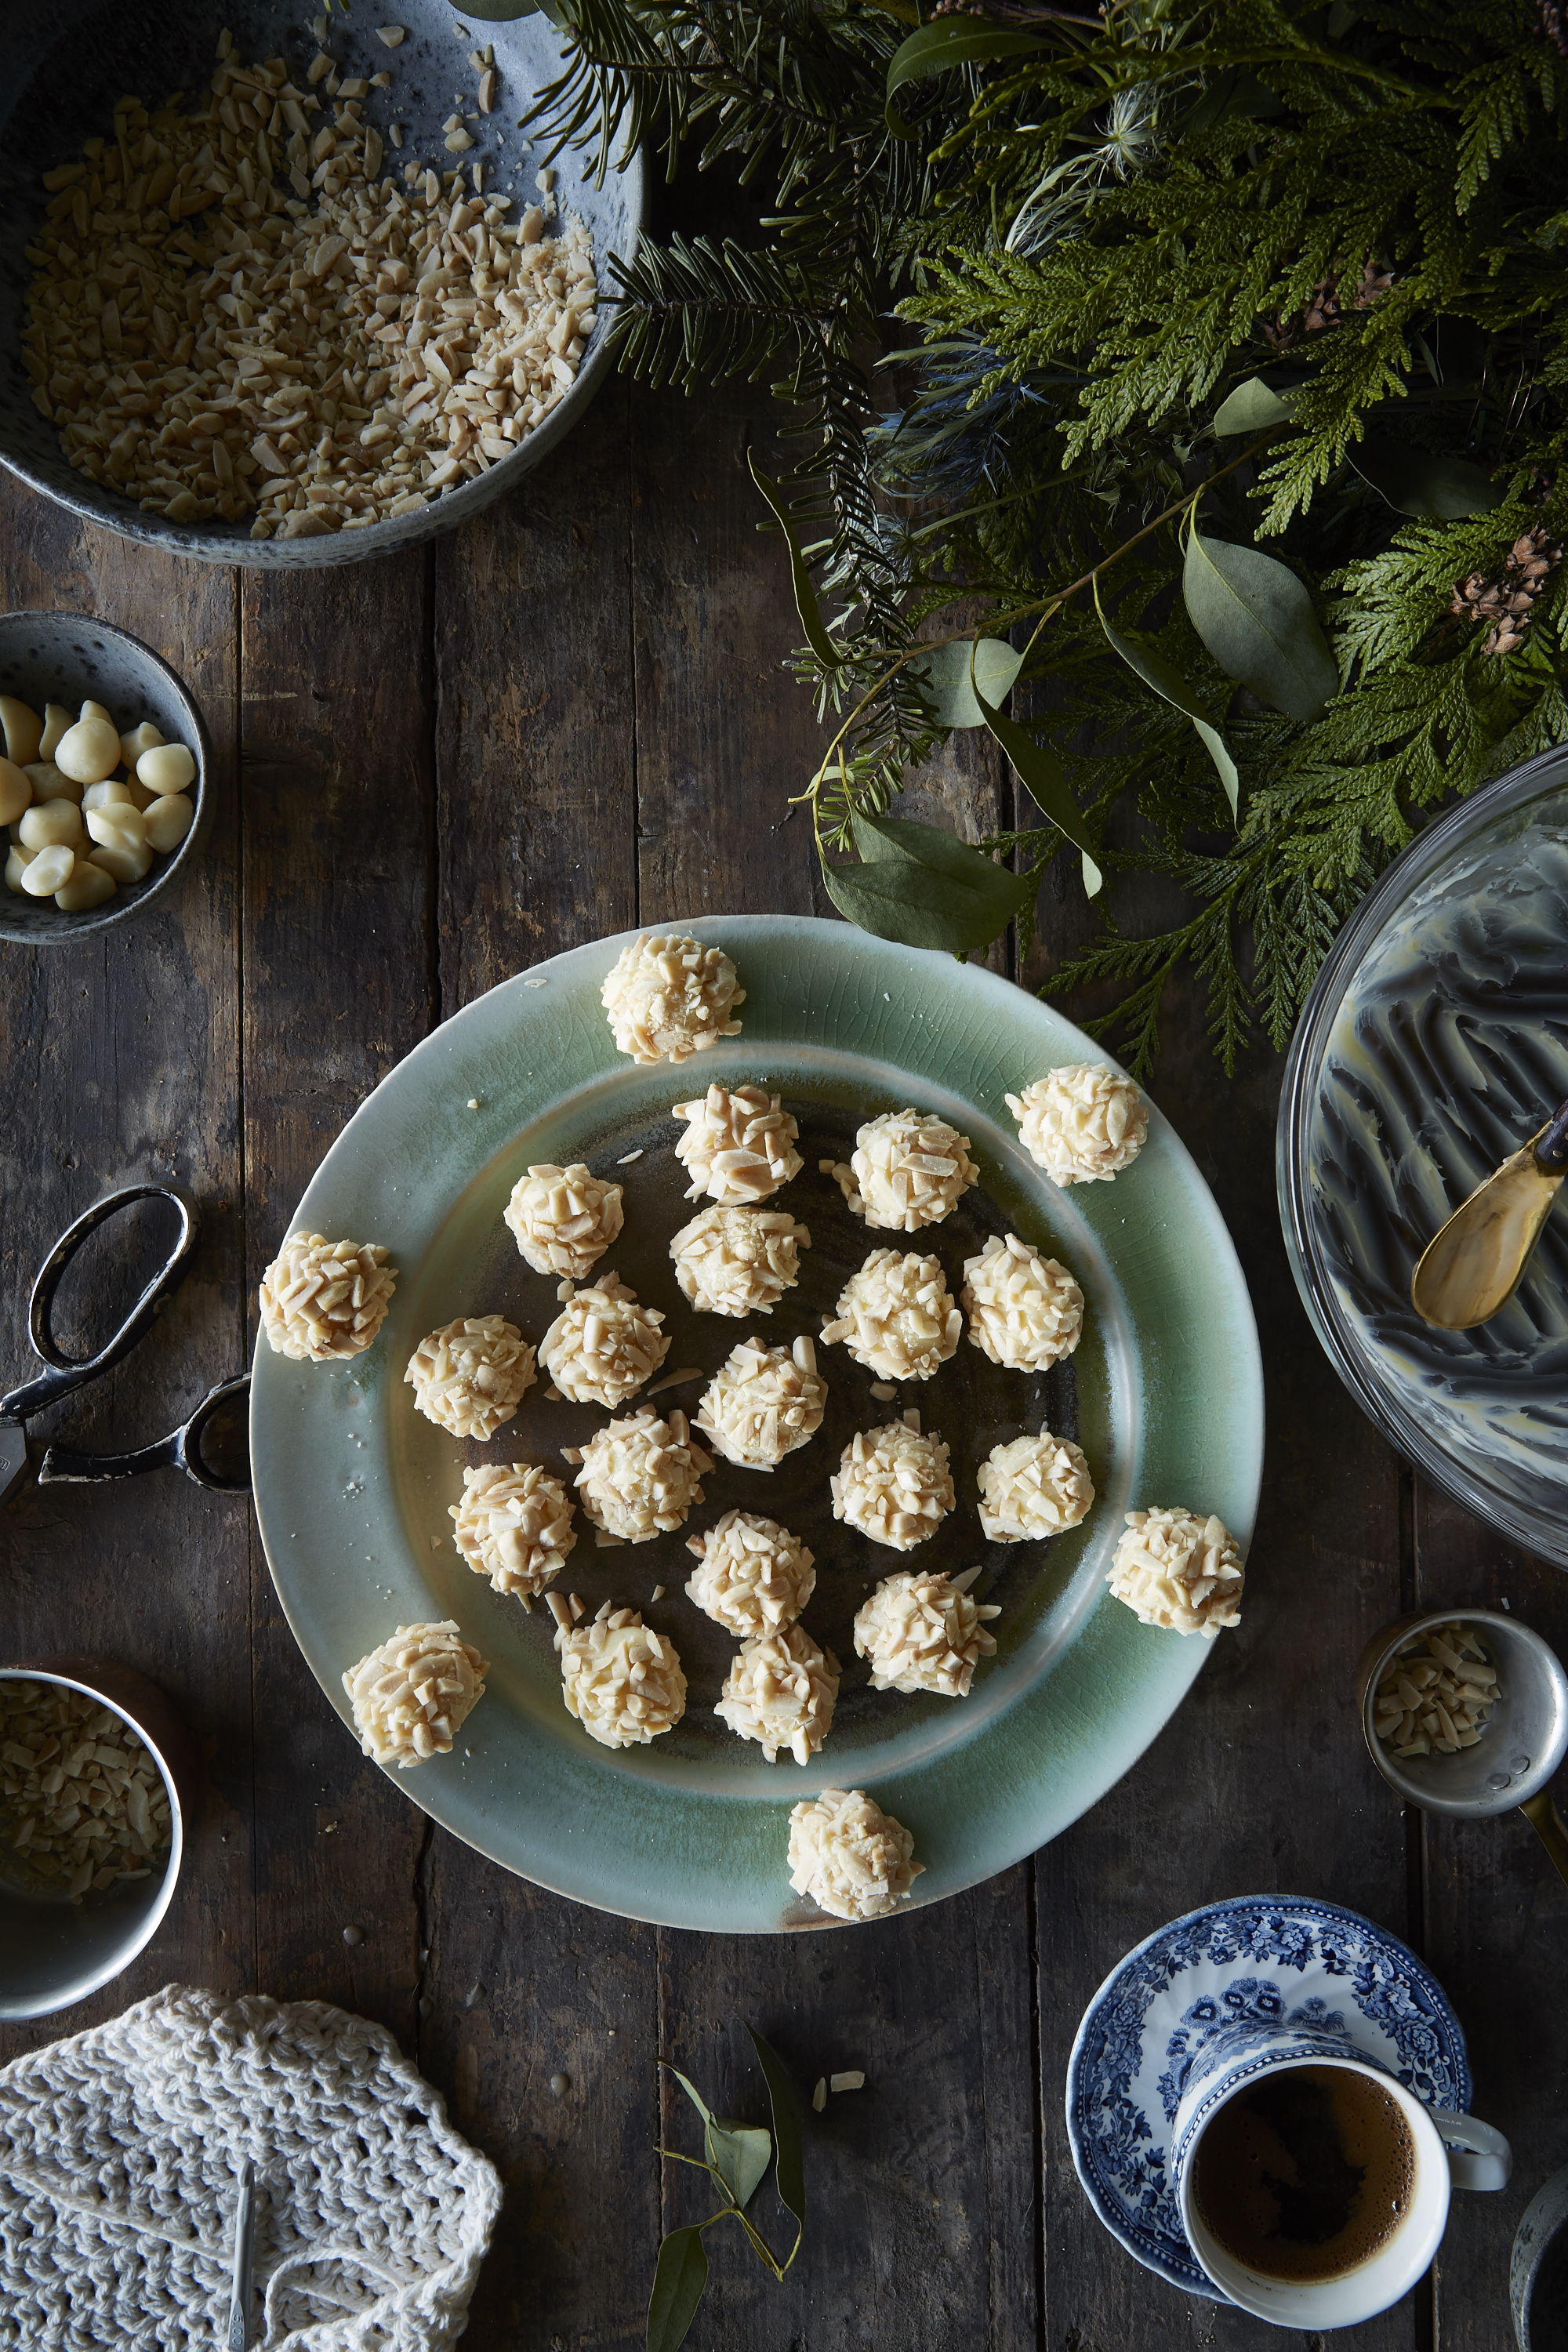 lidl-white-chocolate-truffles-lidl-white-chocolate-truffles-recipe0139